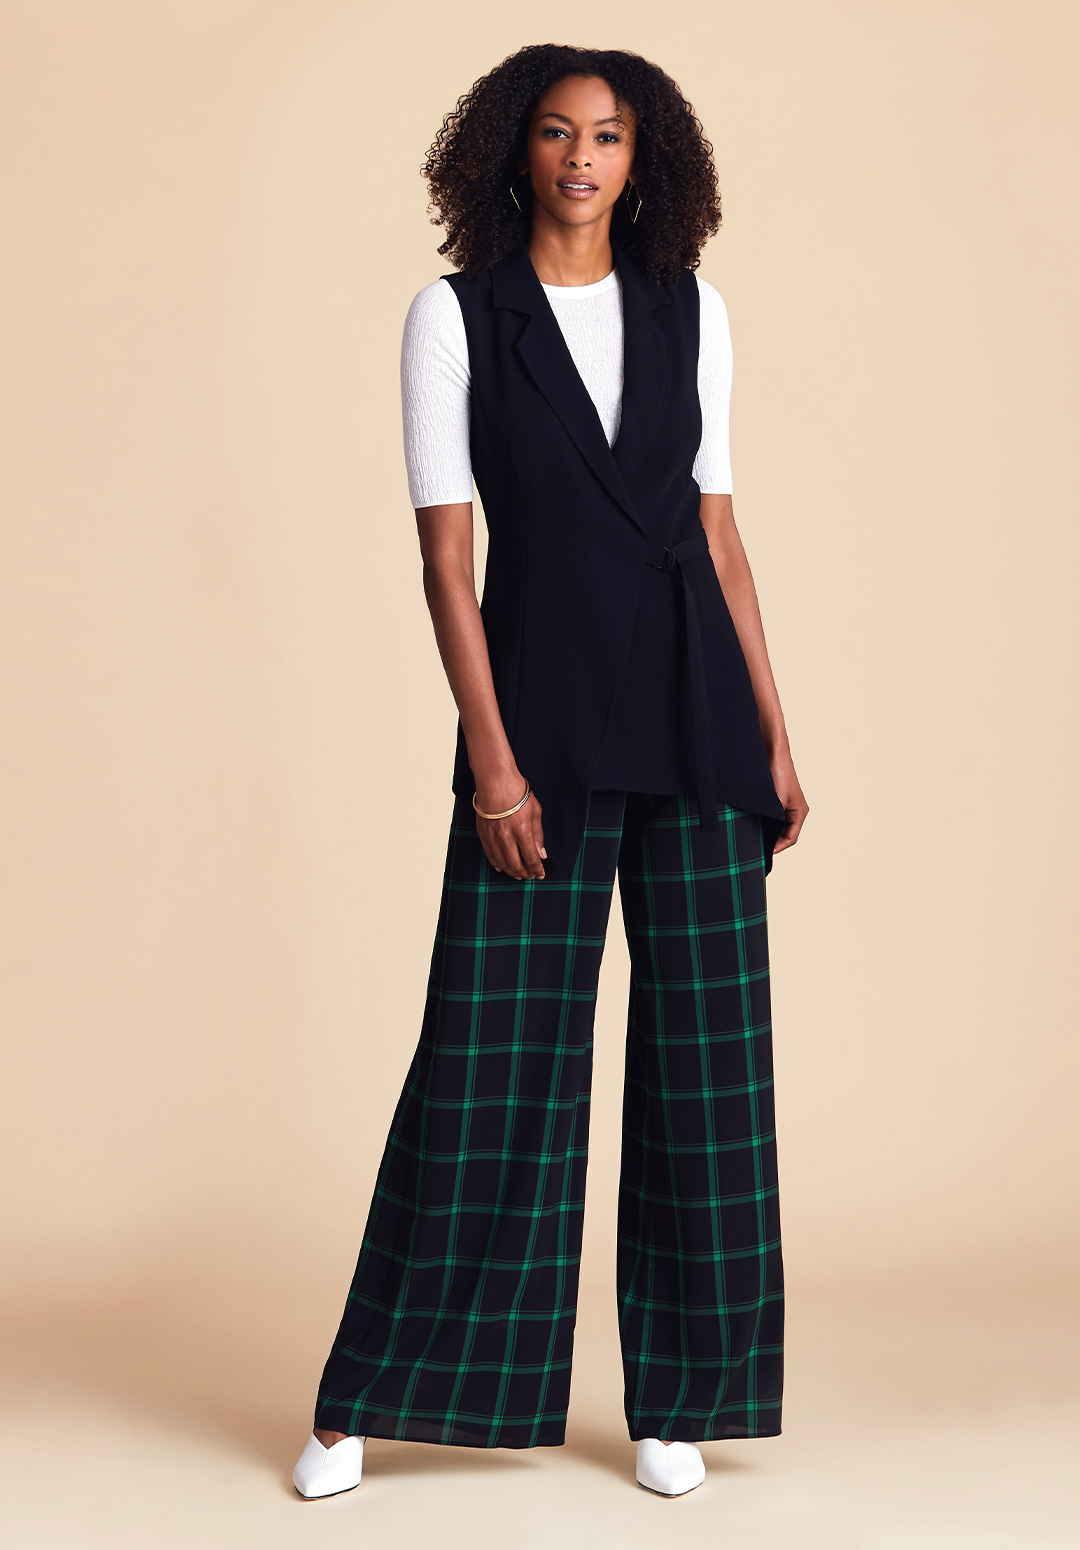 inverted triangle shape workwear look